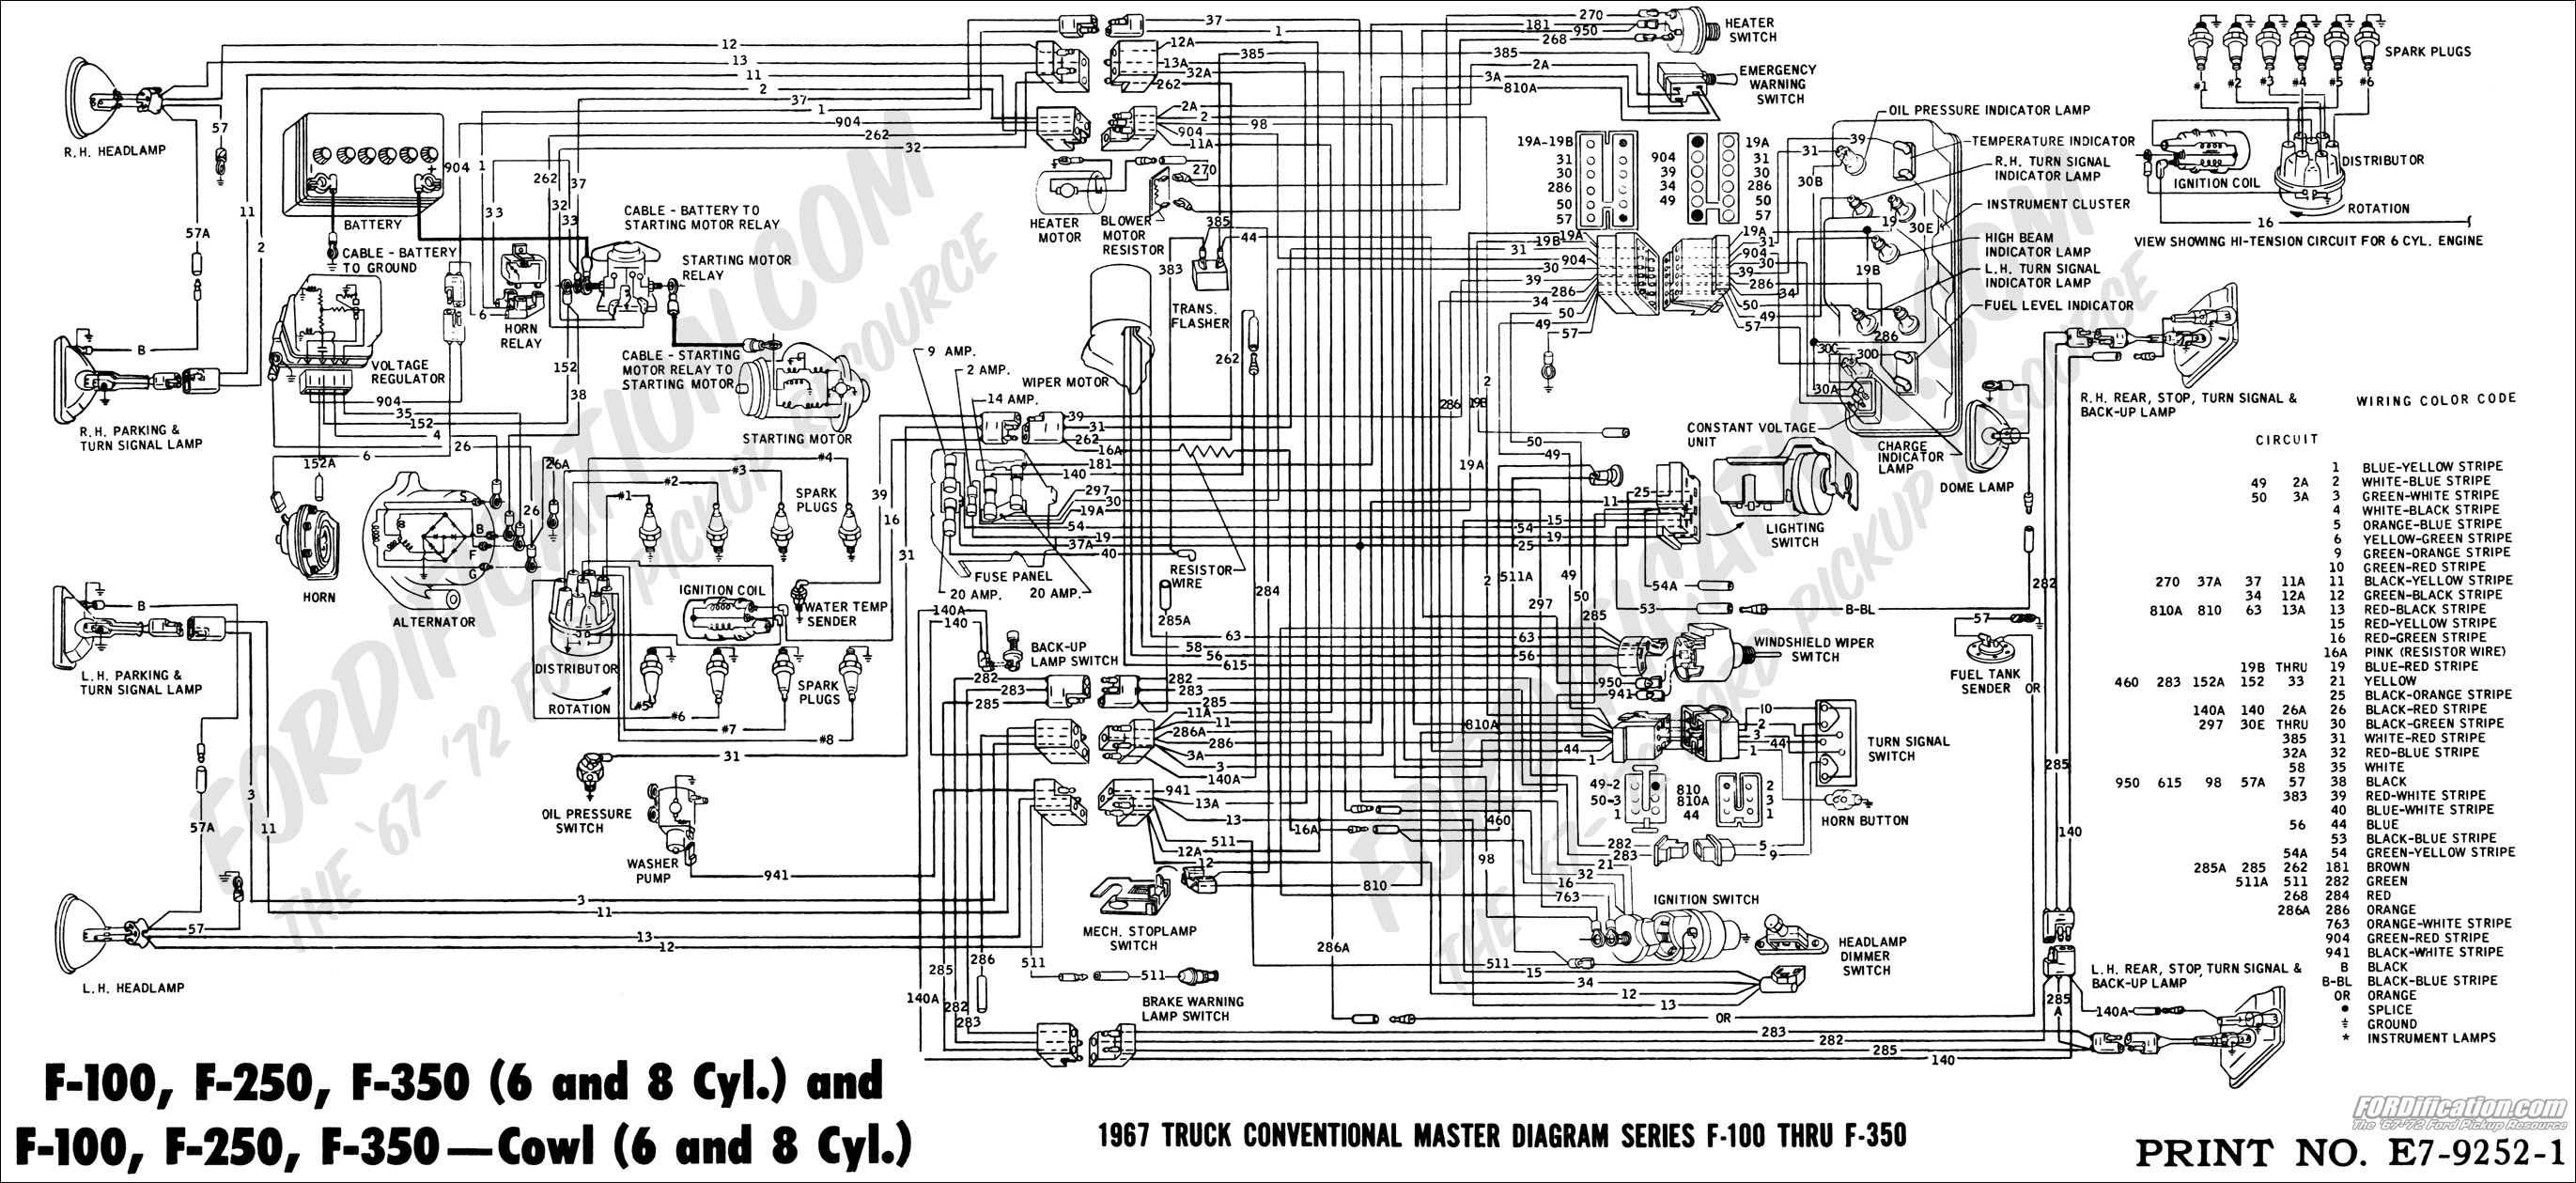 1994 ford e150 wiring harness diagram block and schematic diagrams u2022 rh lazysupply co 2002 ford econoline e250 fuse diagram 2002 ford e150 fuse box